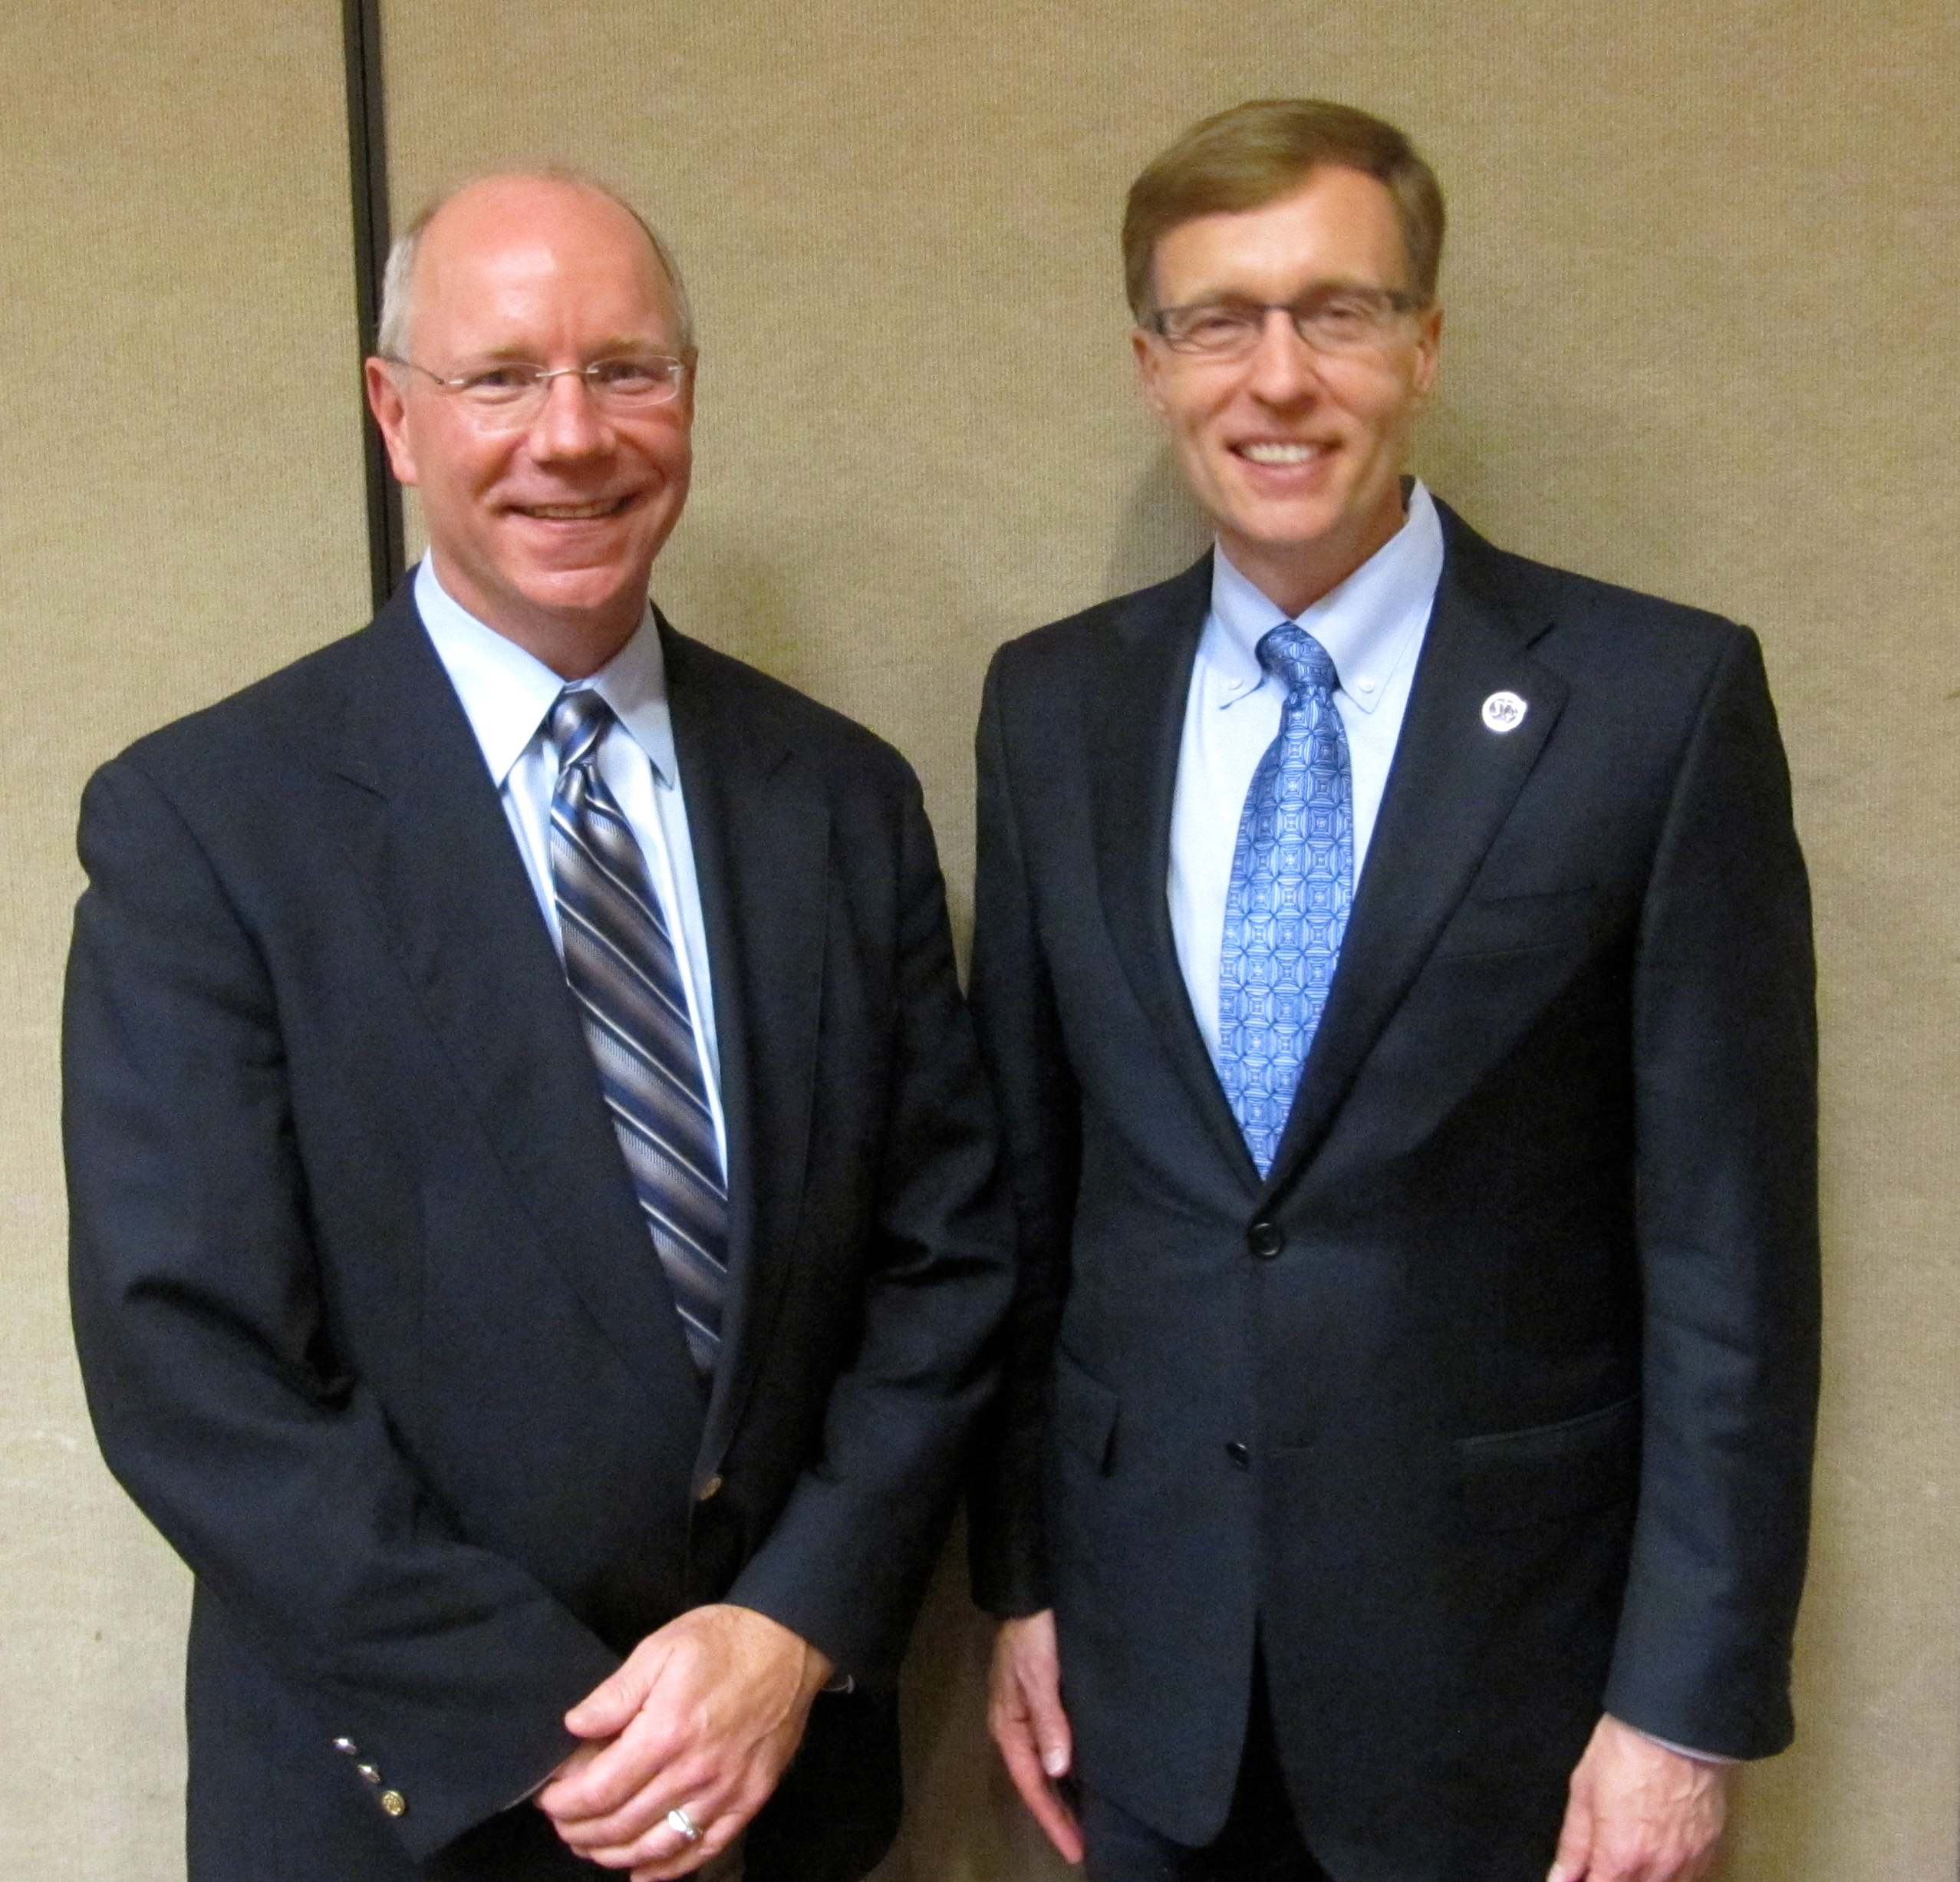 David Grimm and Washington State Attorney General Rob McKenna